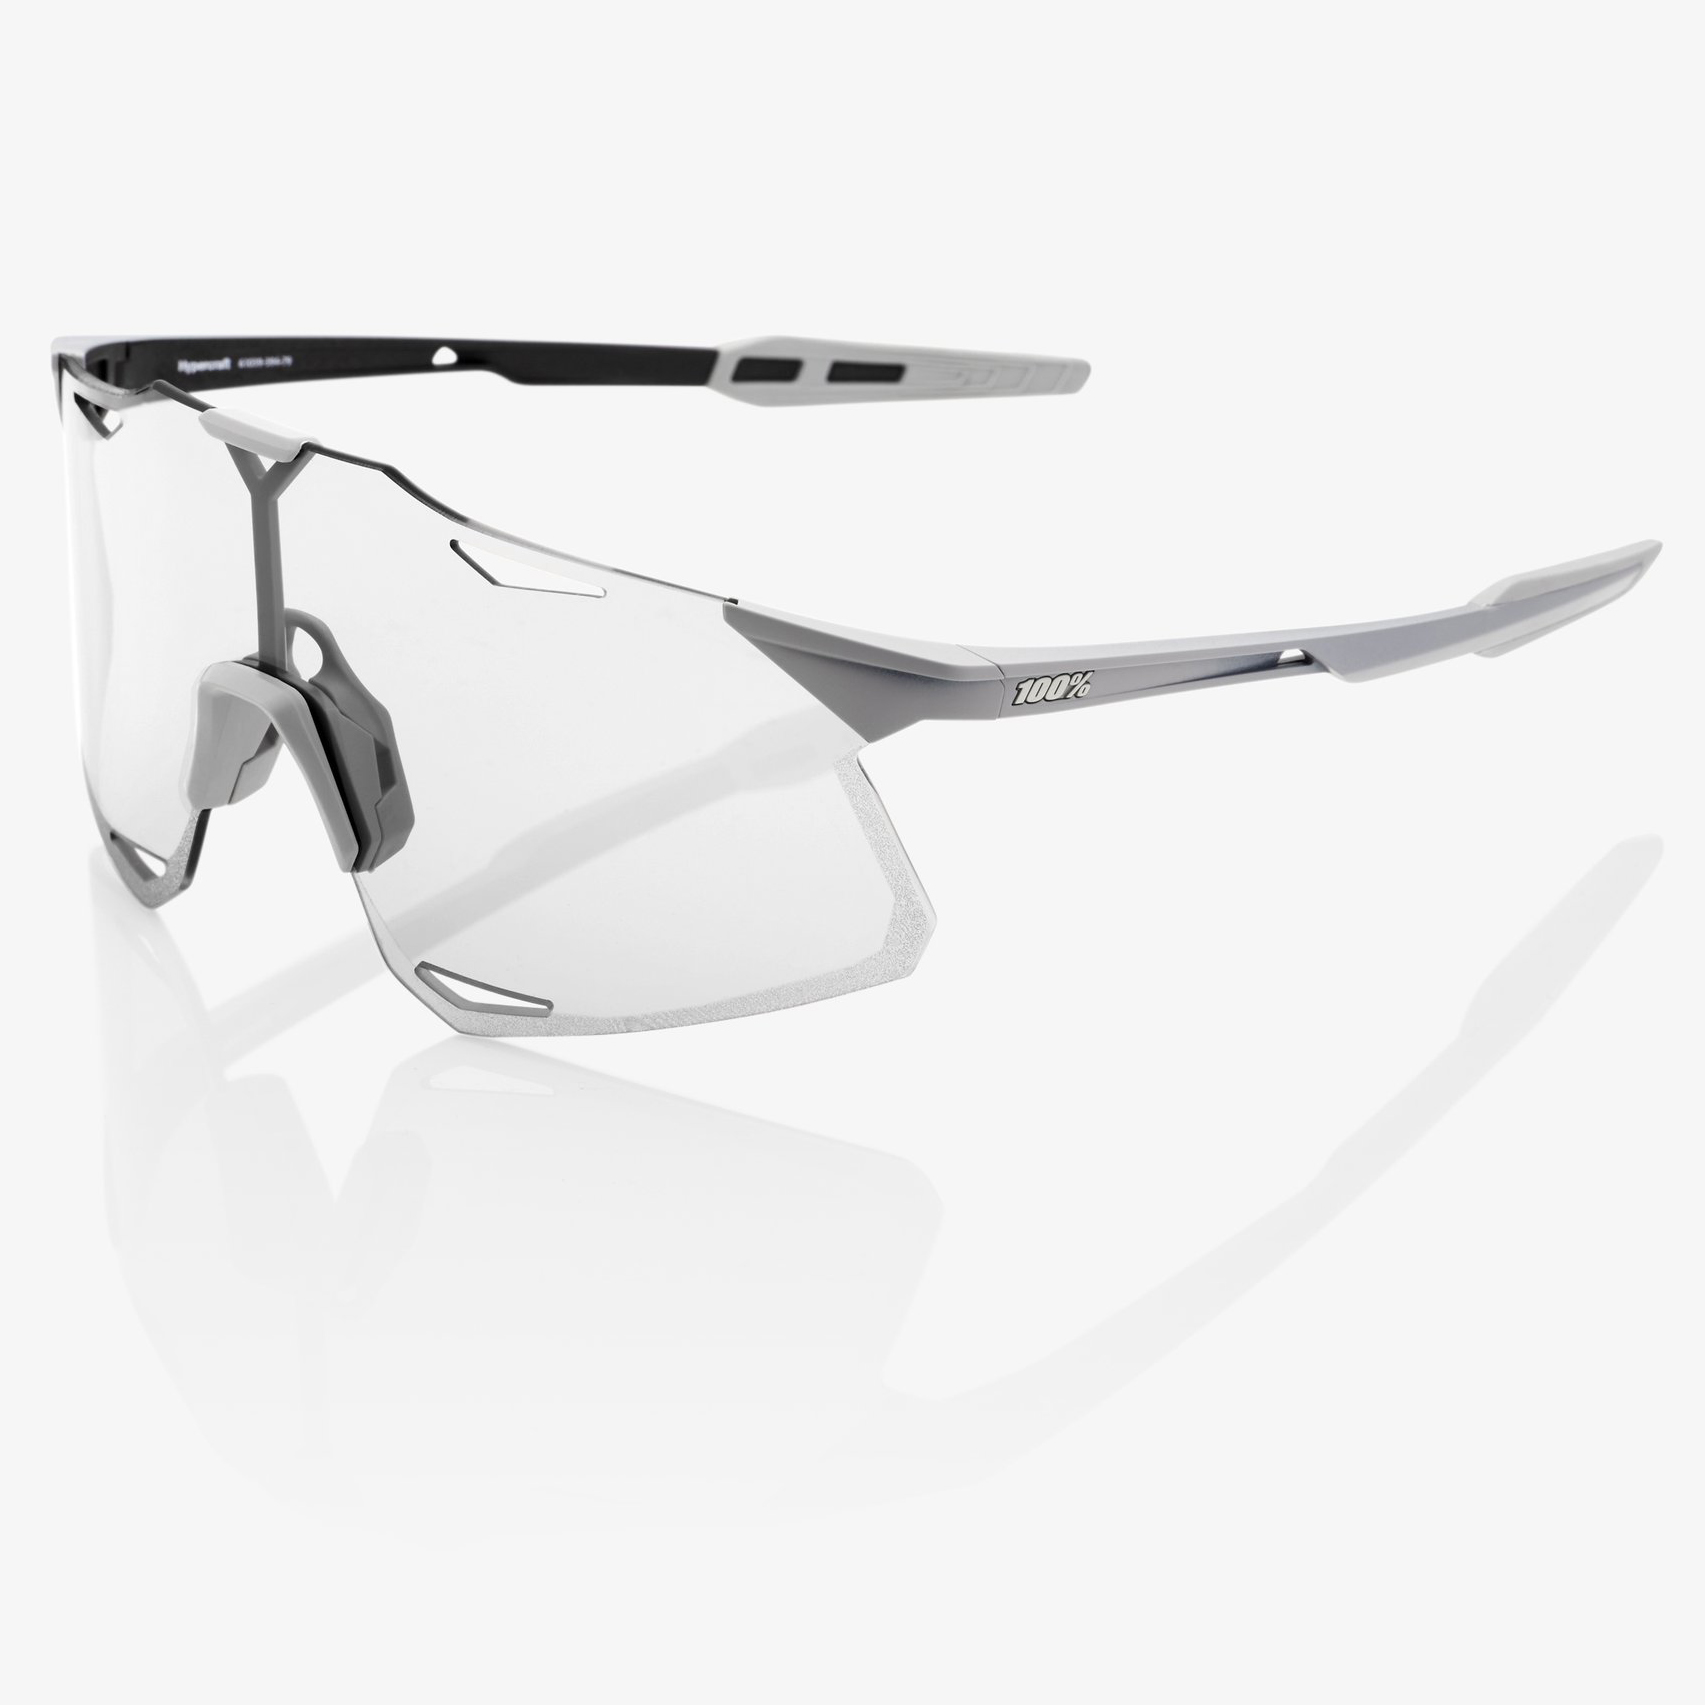 Image of 100% Hypercraft - HiPER Lens Glasses - Matte Stone Grey/Coral + Clear